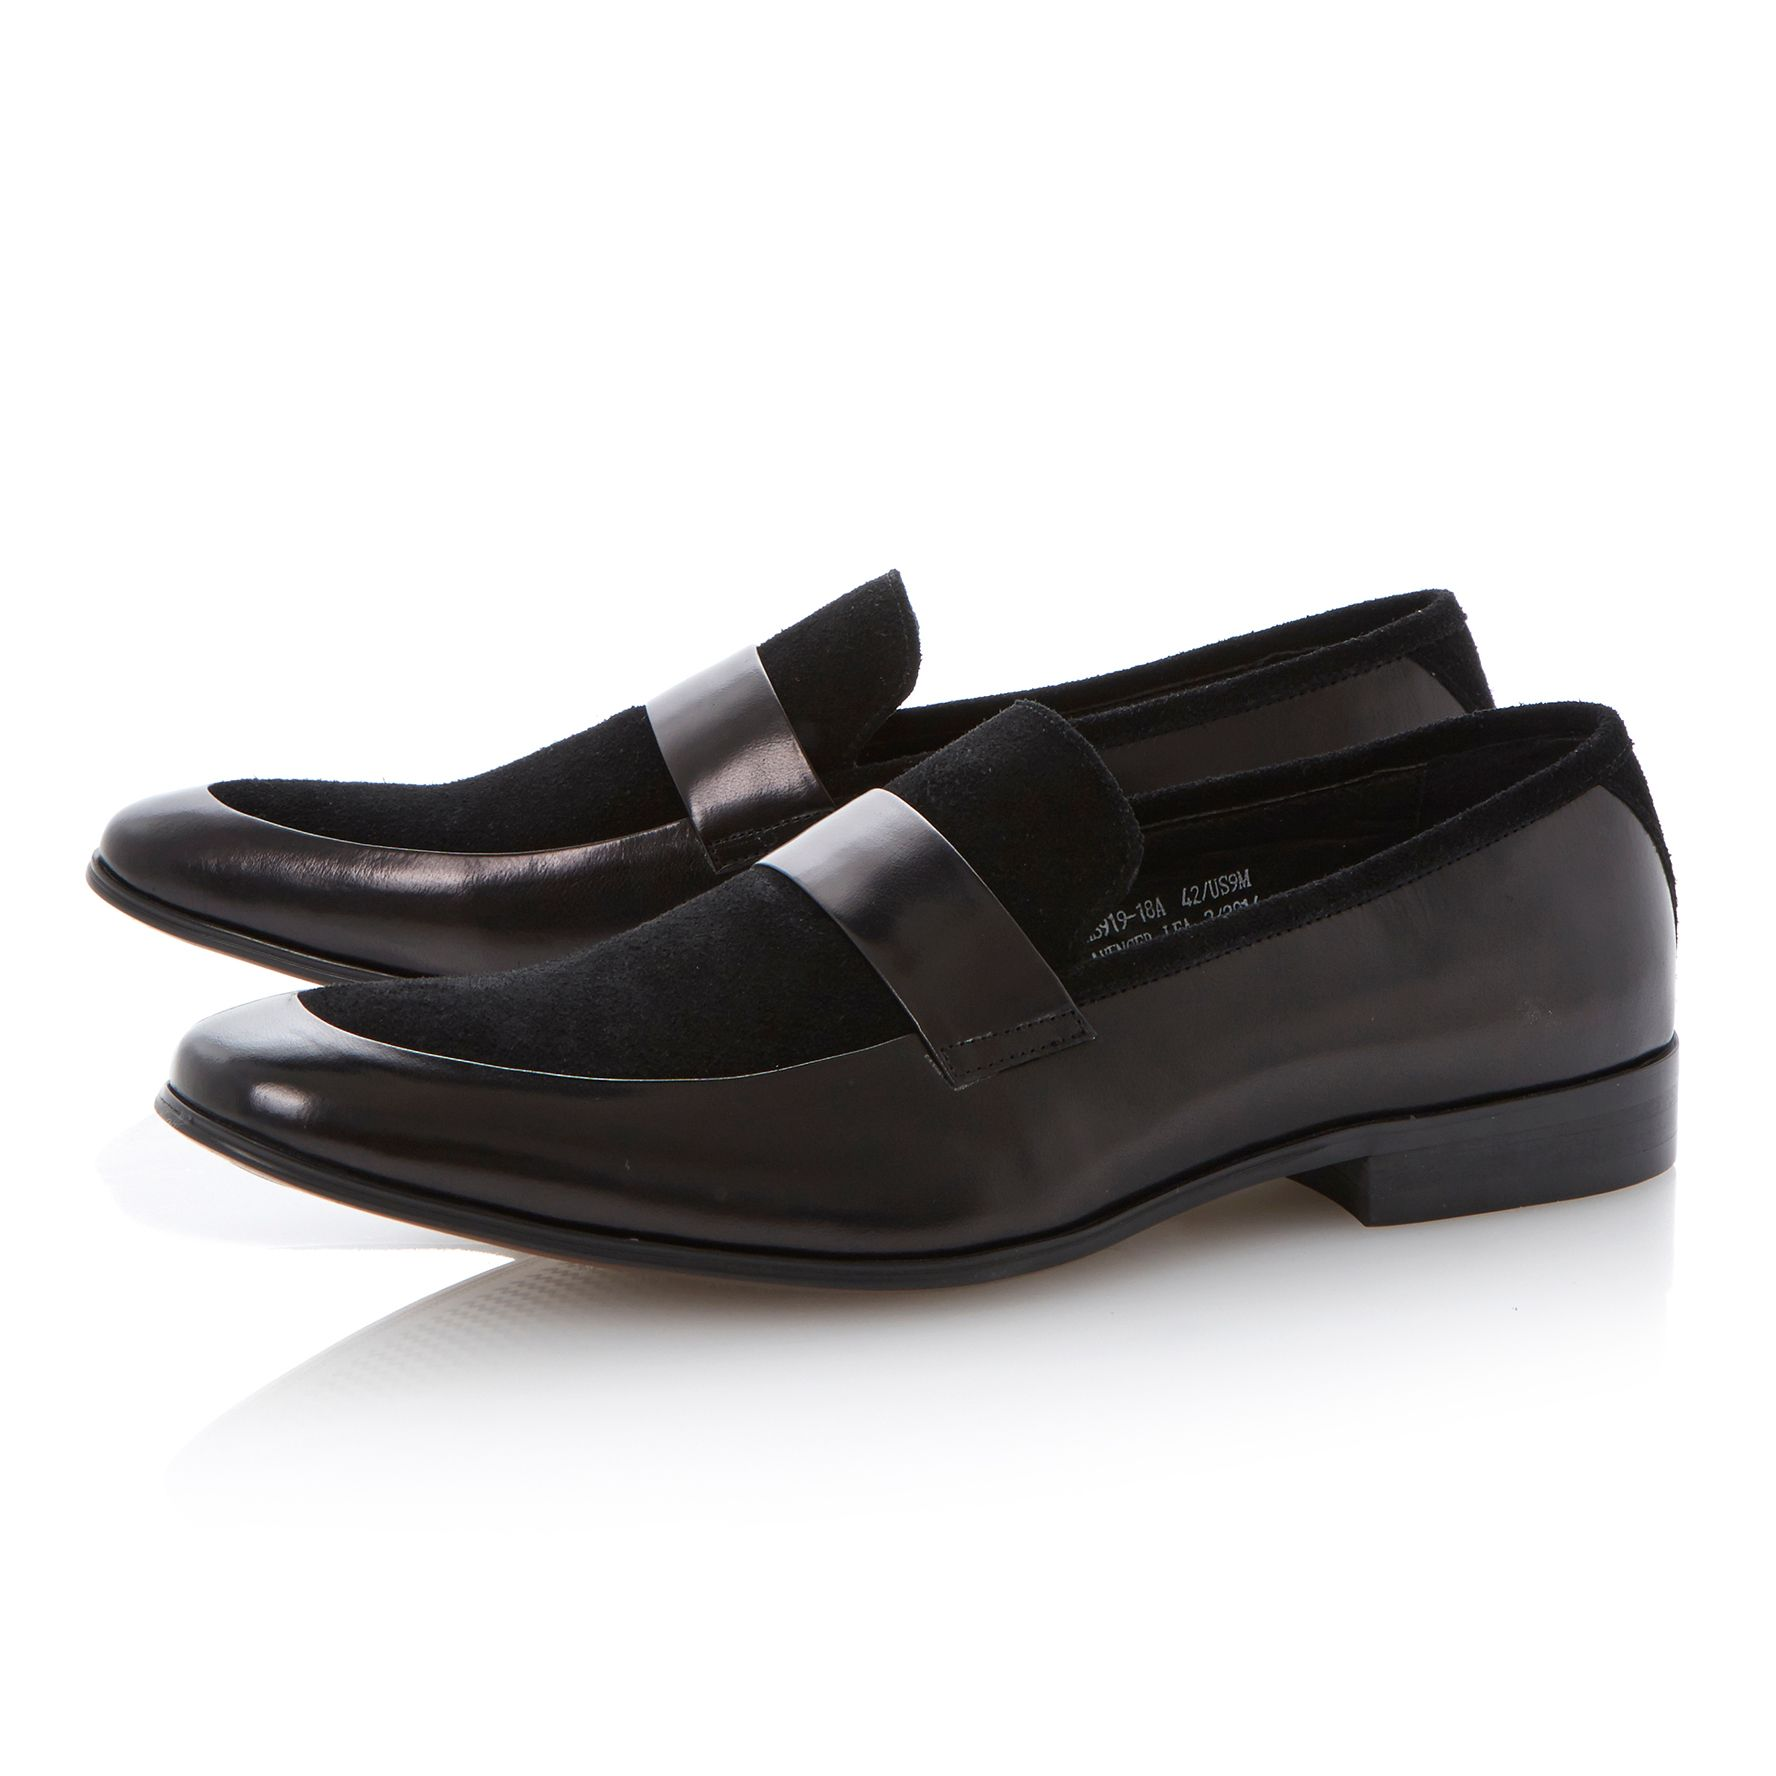 Avenger lea saddle loafers